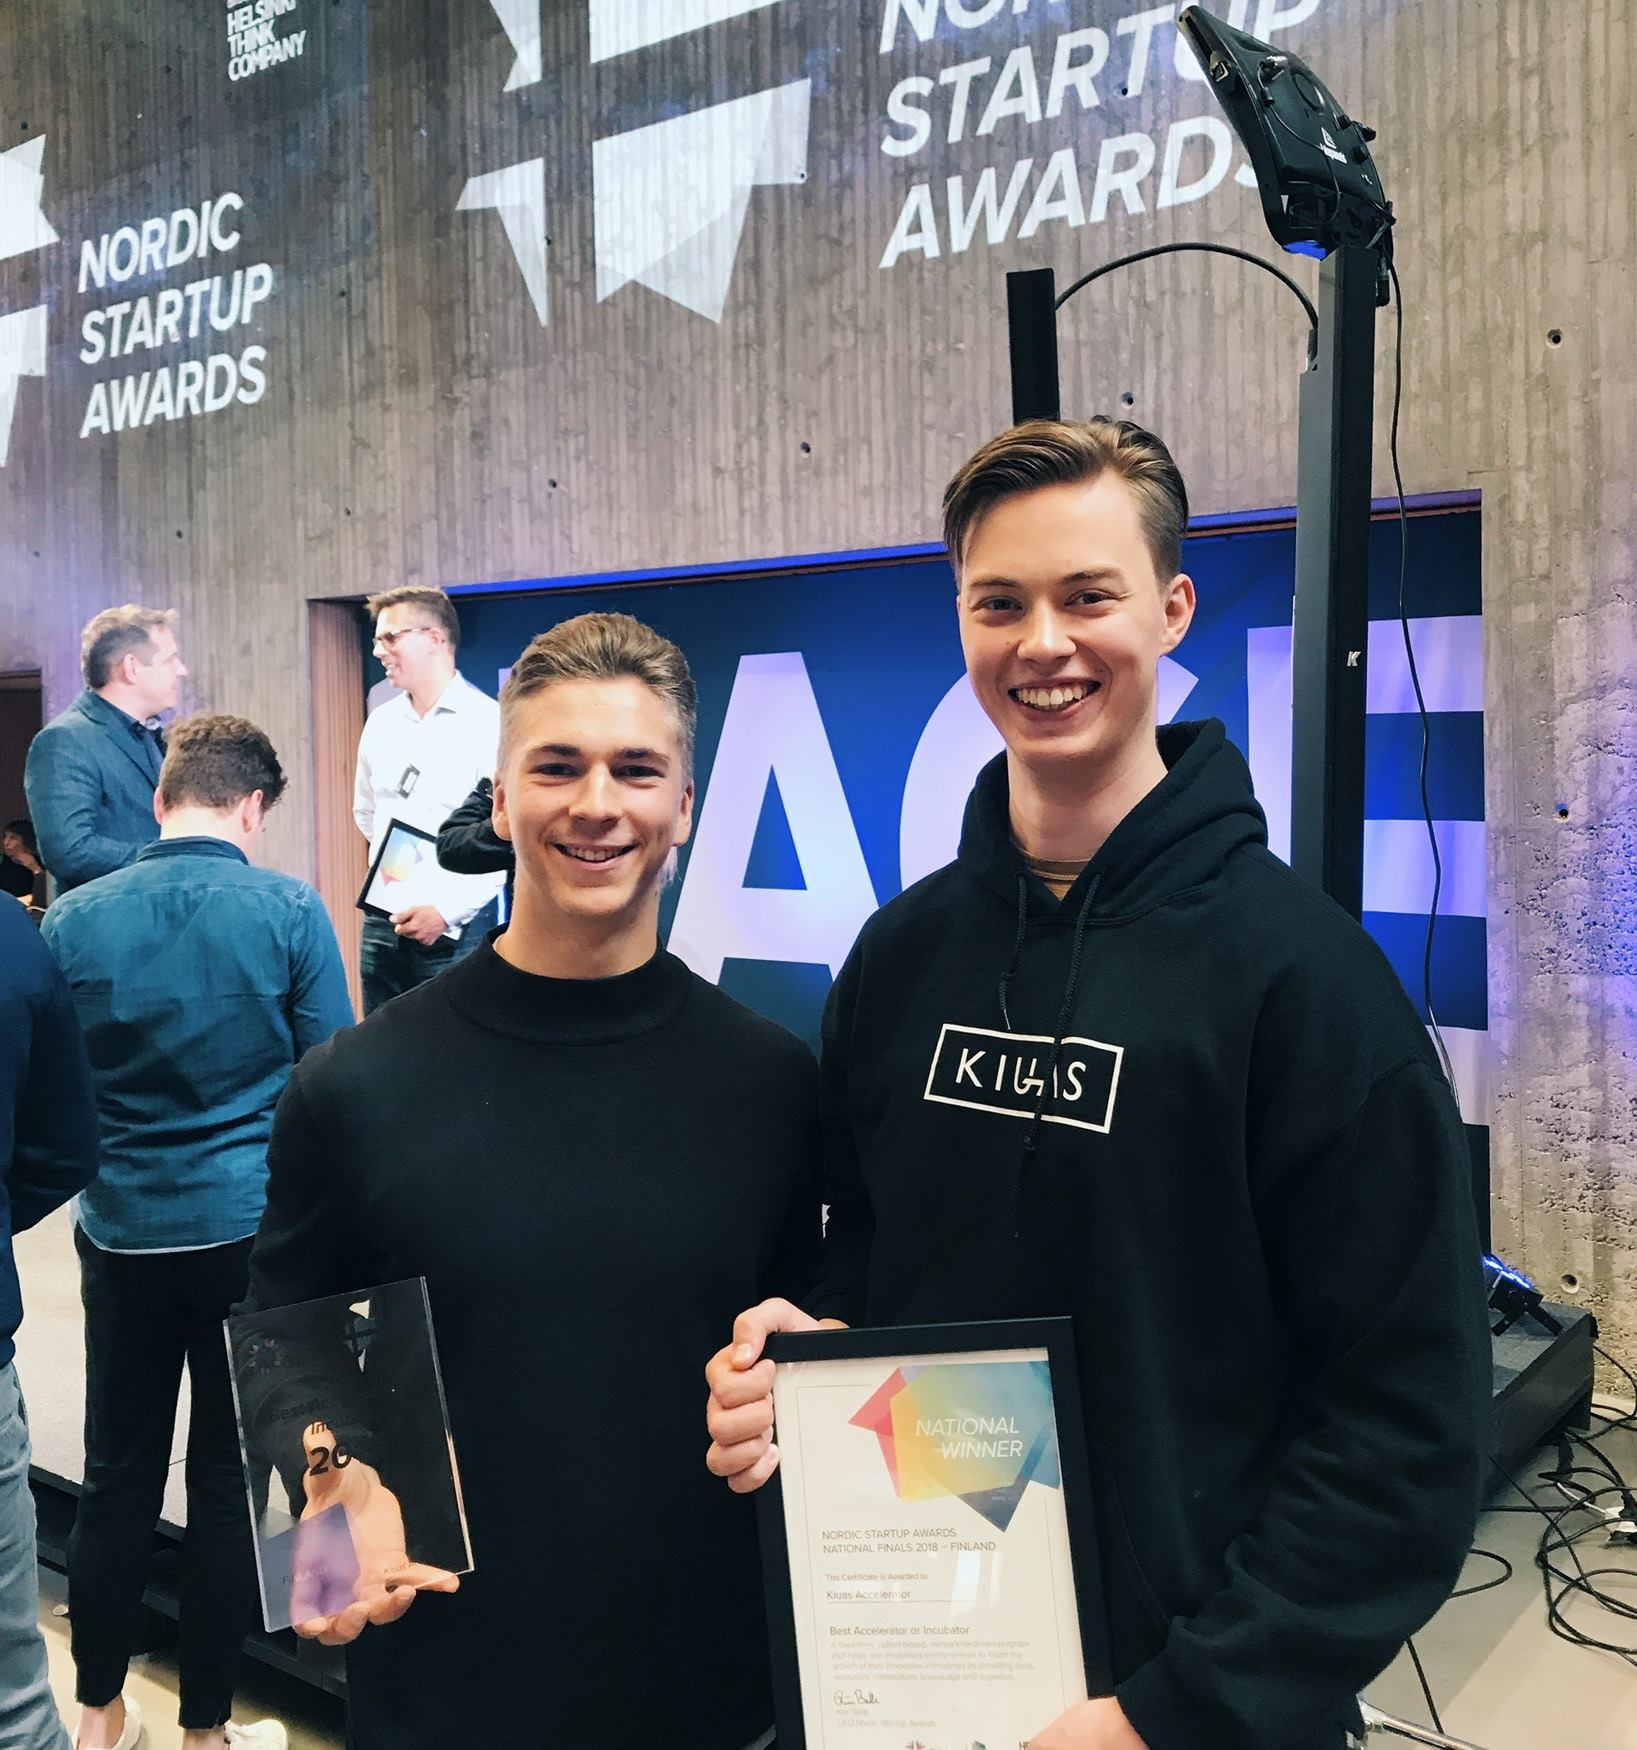 Kiuas Accelerator was awarded as the best accelerator program in Finland